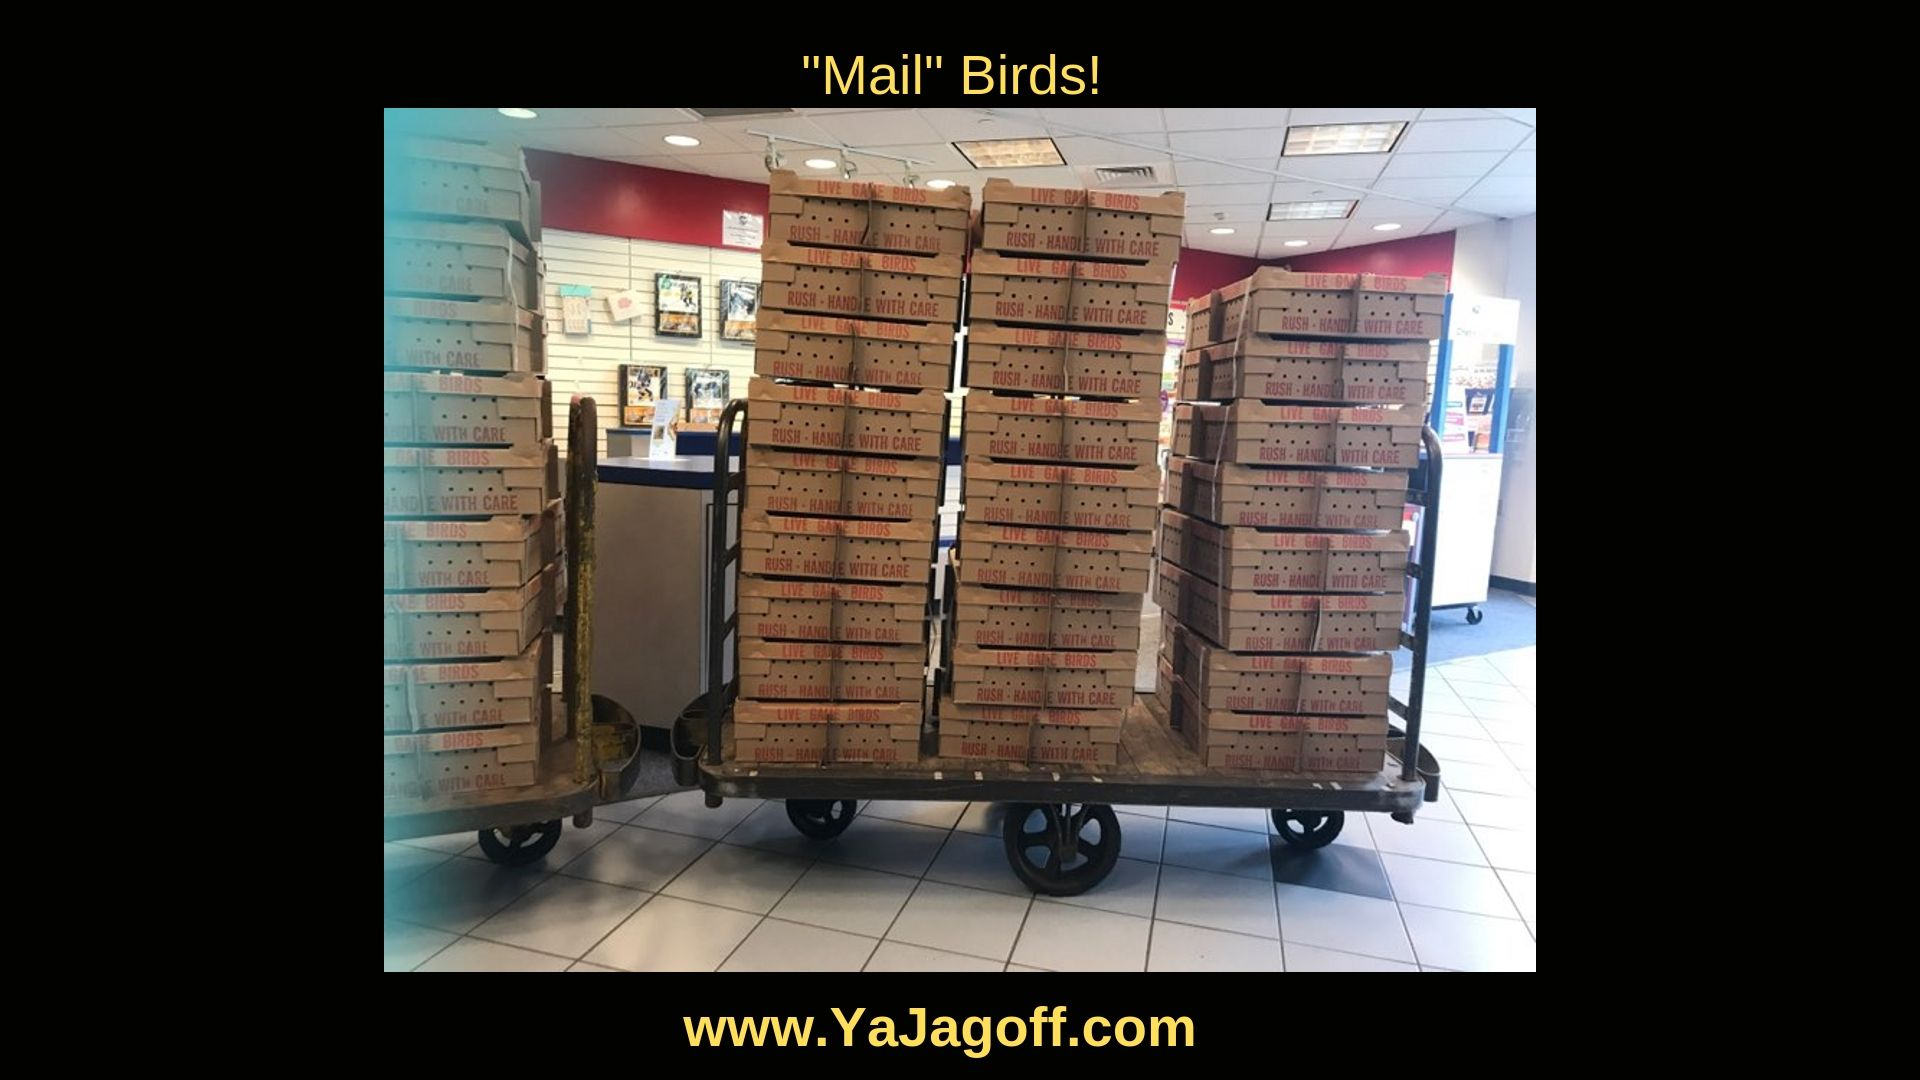 Mail Birds Jail Birds